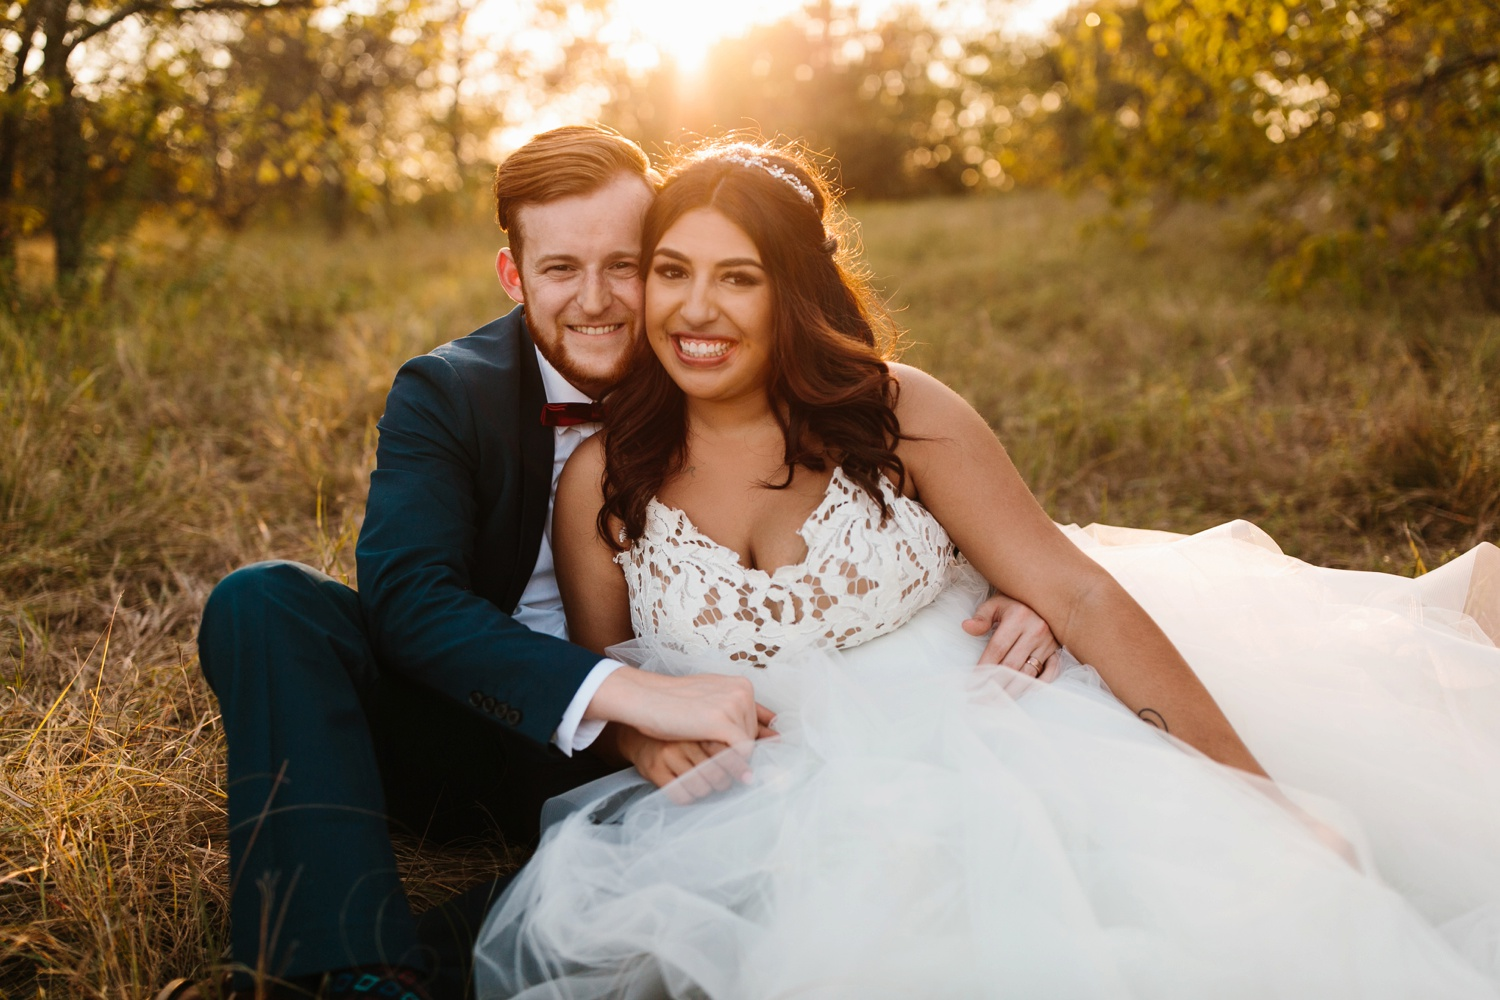 Grant + Lysette | a vibrant, deep burgundy and navy, and mixed metals wedding at Hidden Pines Chapel by North Texas Wedding Photographer Rachel Meagan Photography 230